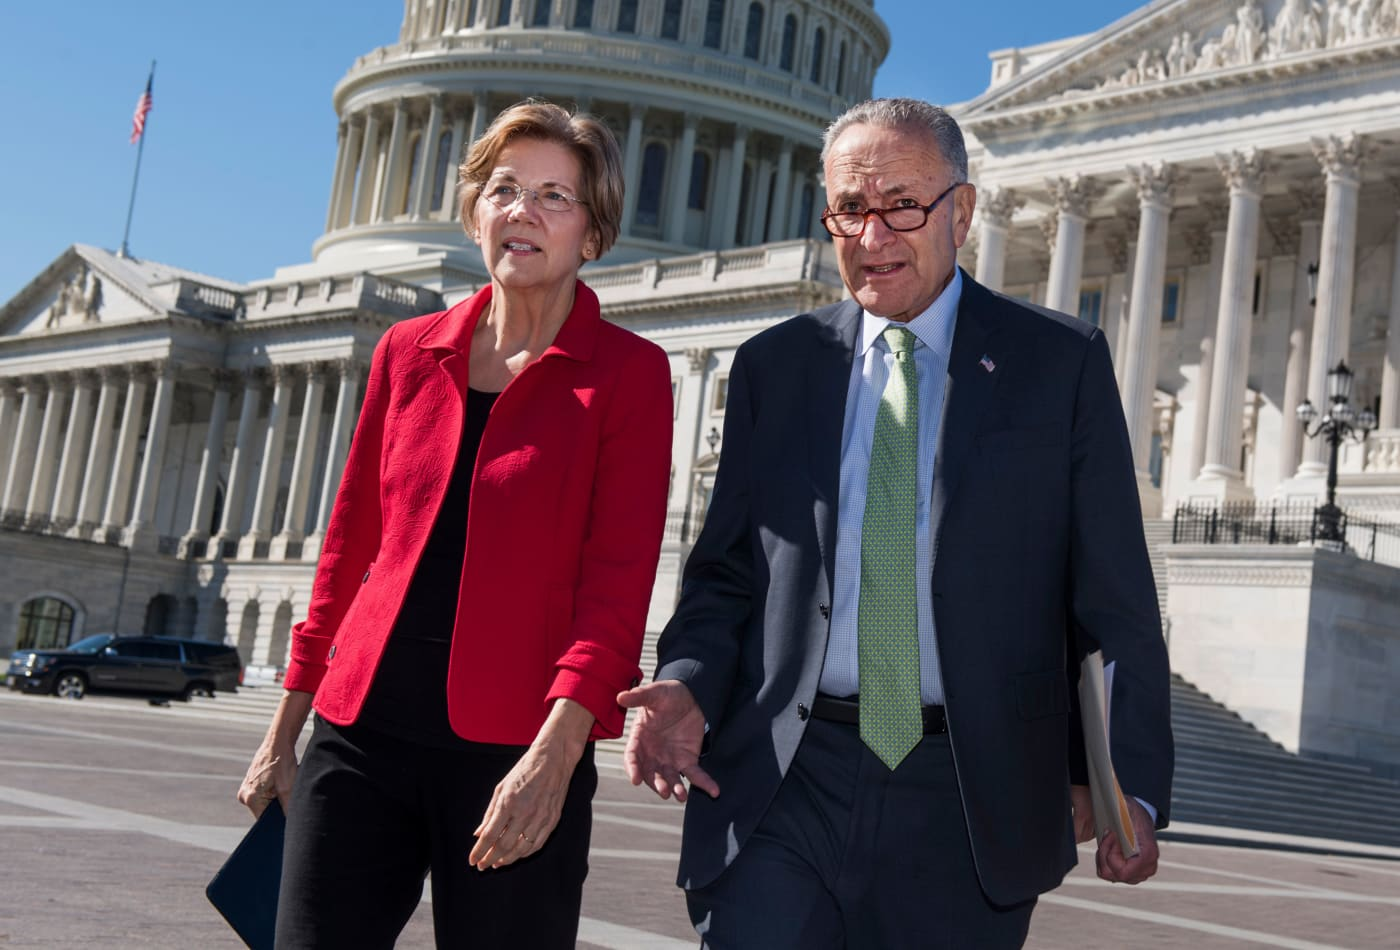 Wall Street donors are so worried about Elizabeth Warren that they are snubbing Democrats in 2020 Senate races